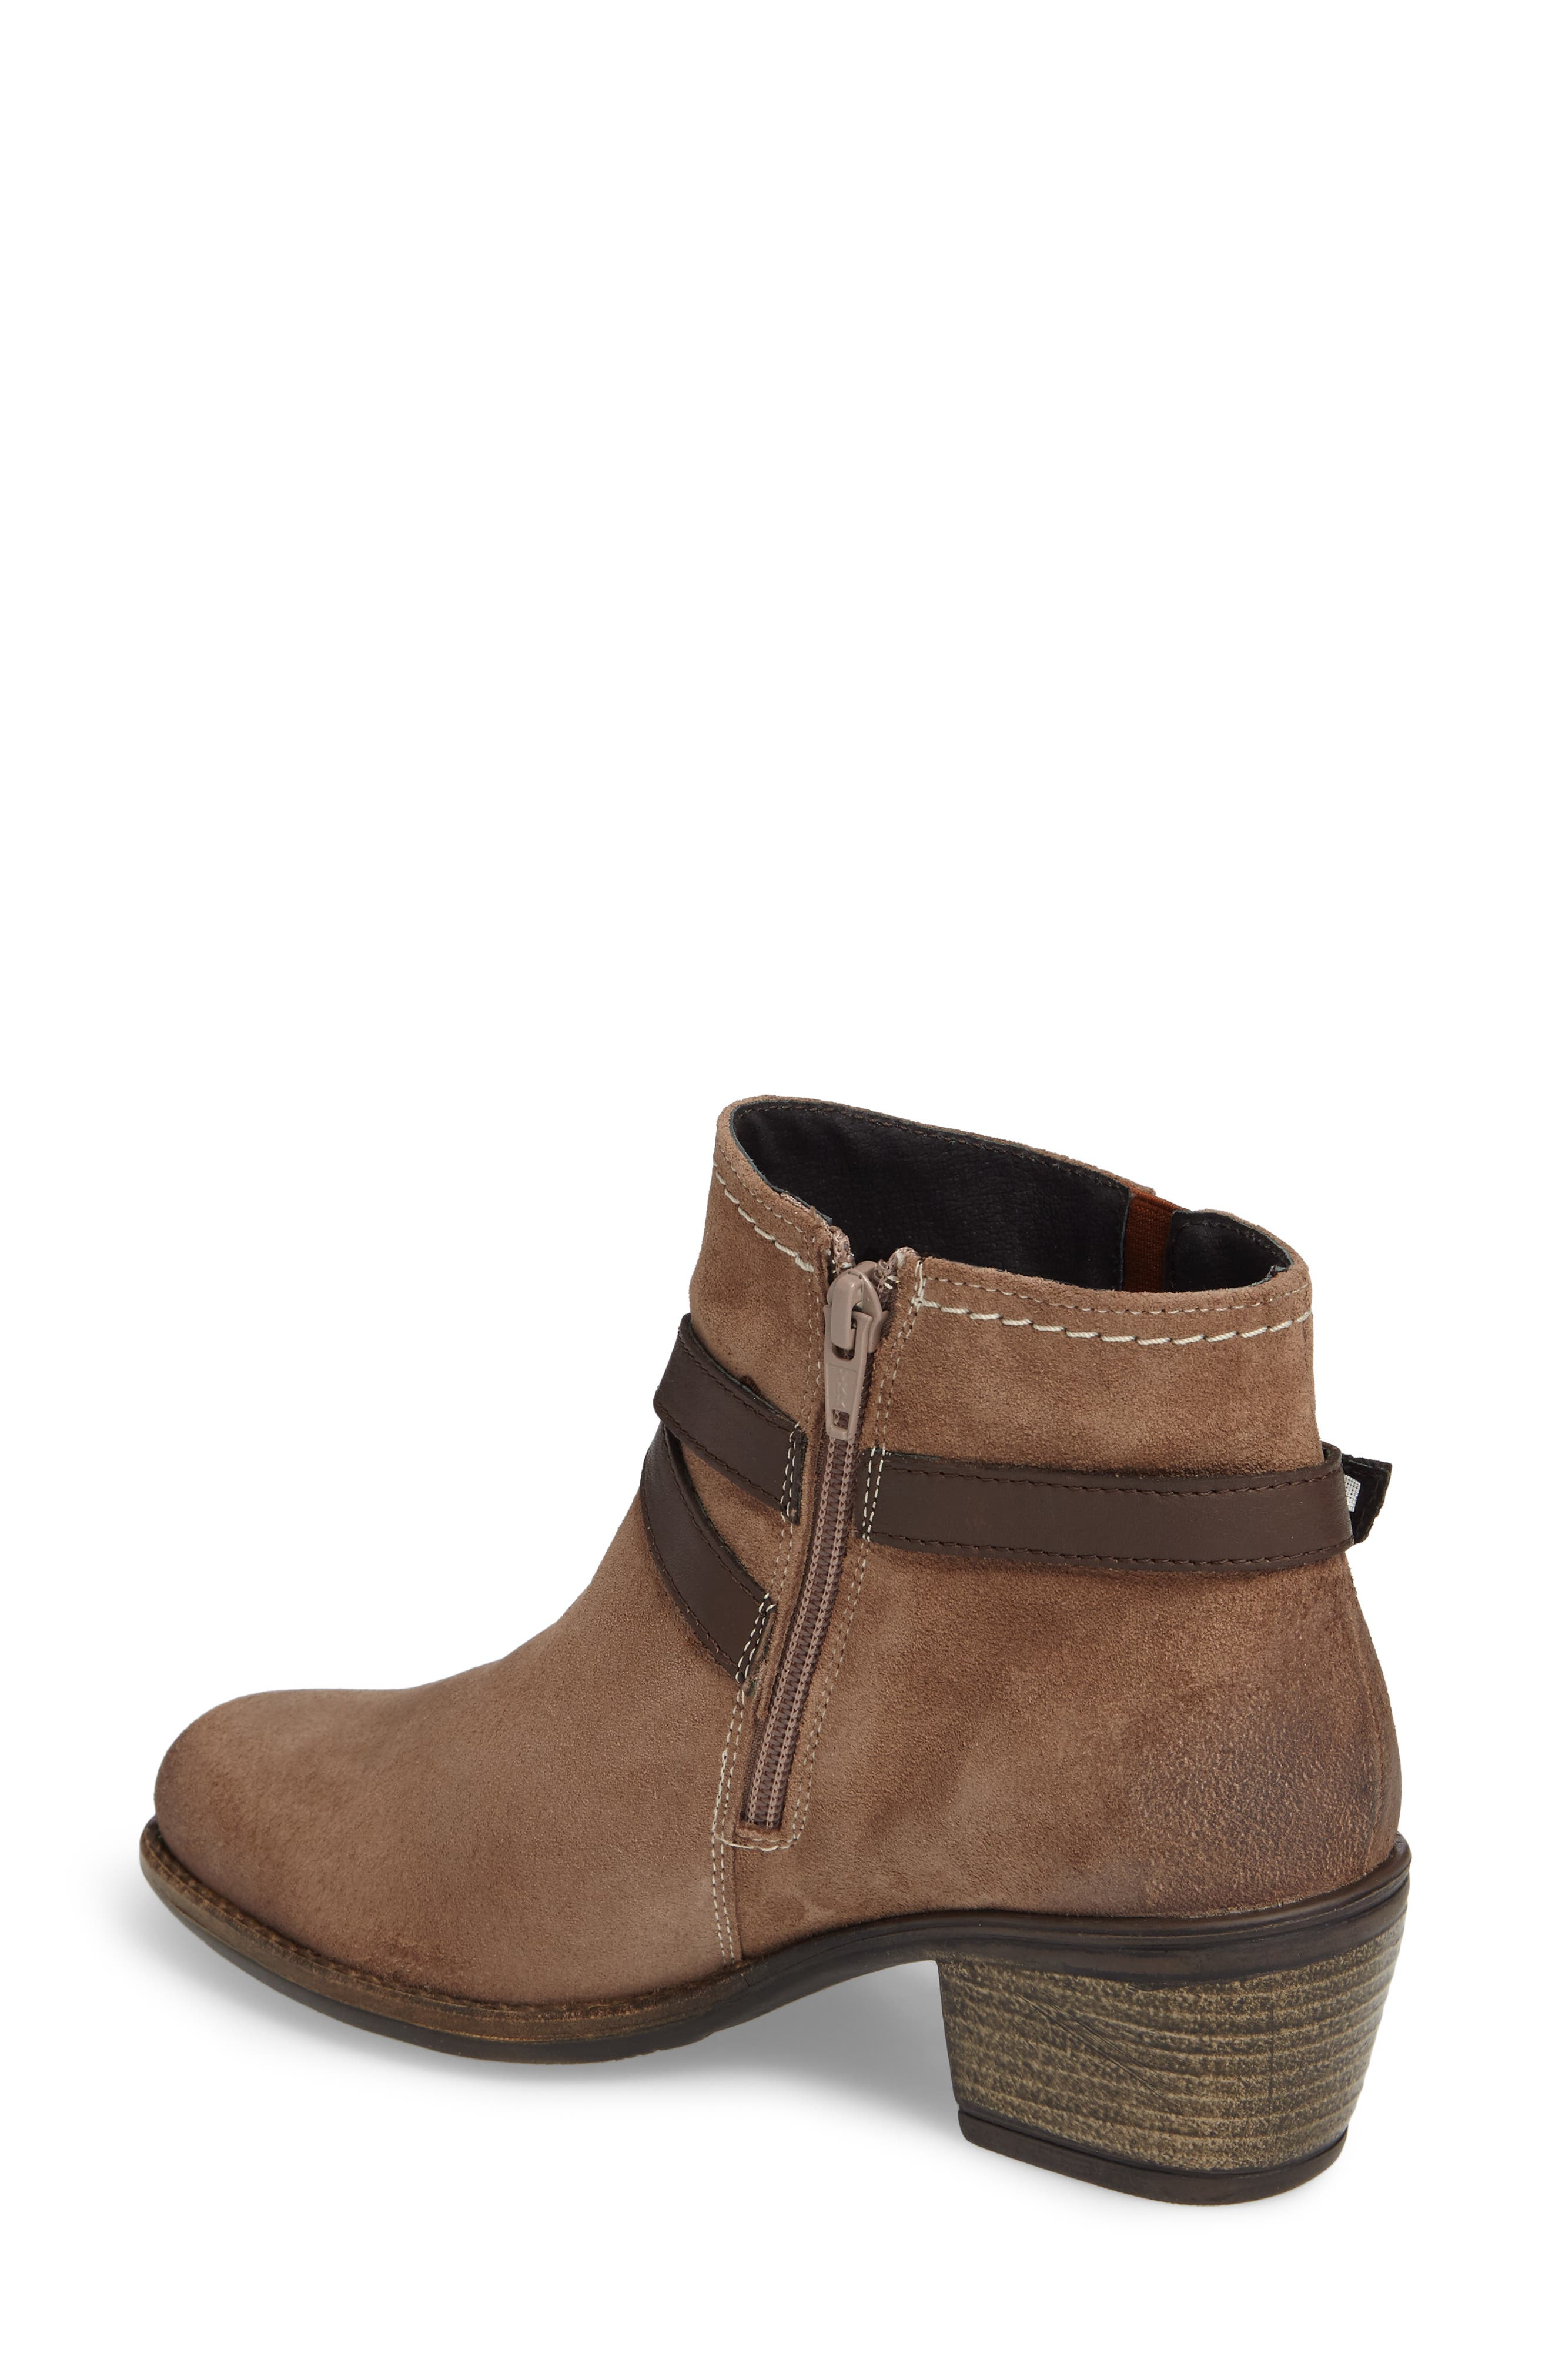 Greenville Waterproof Bootie,                             Alternate thumbnail 2, color,                             Taupe